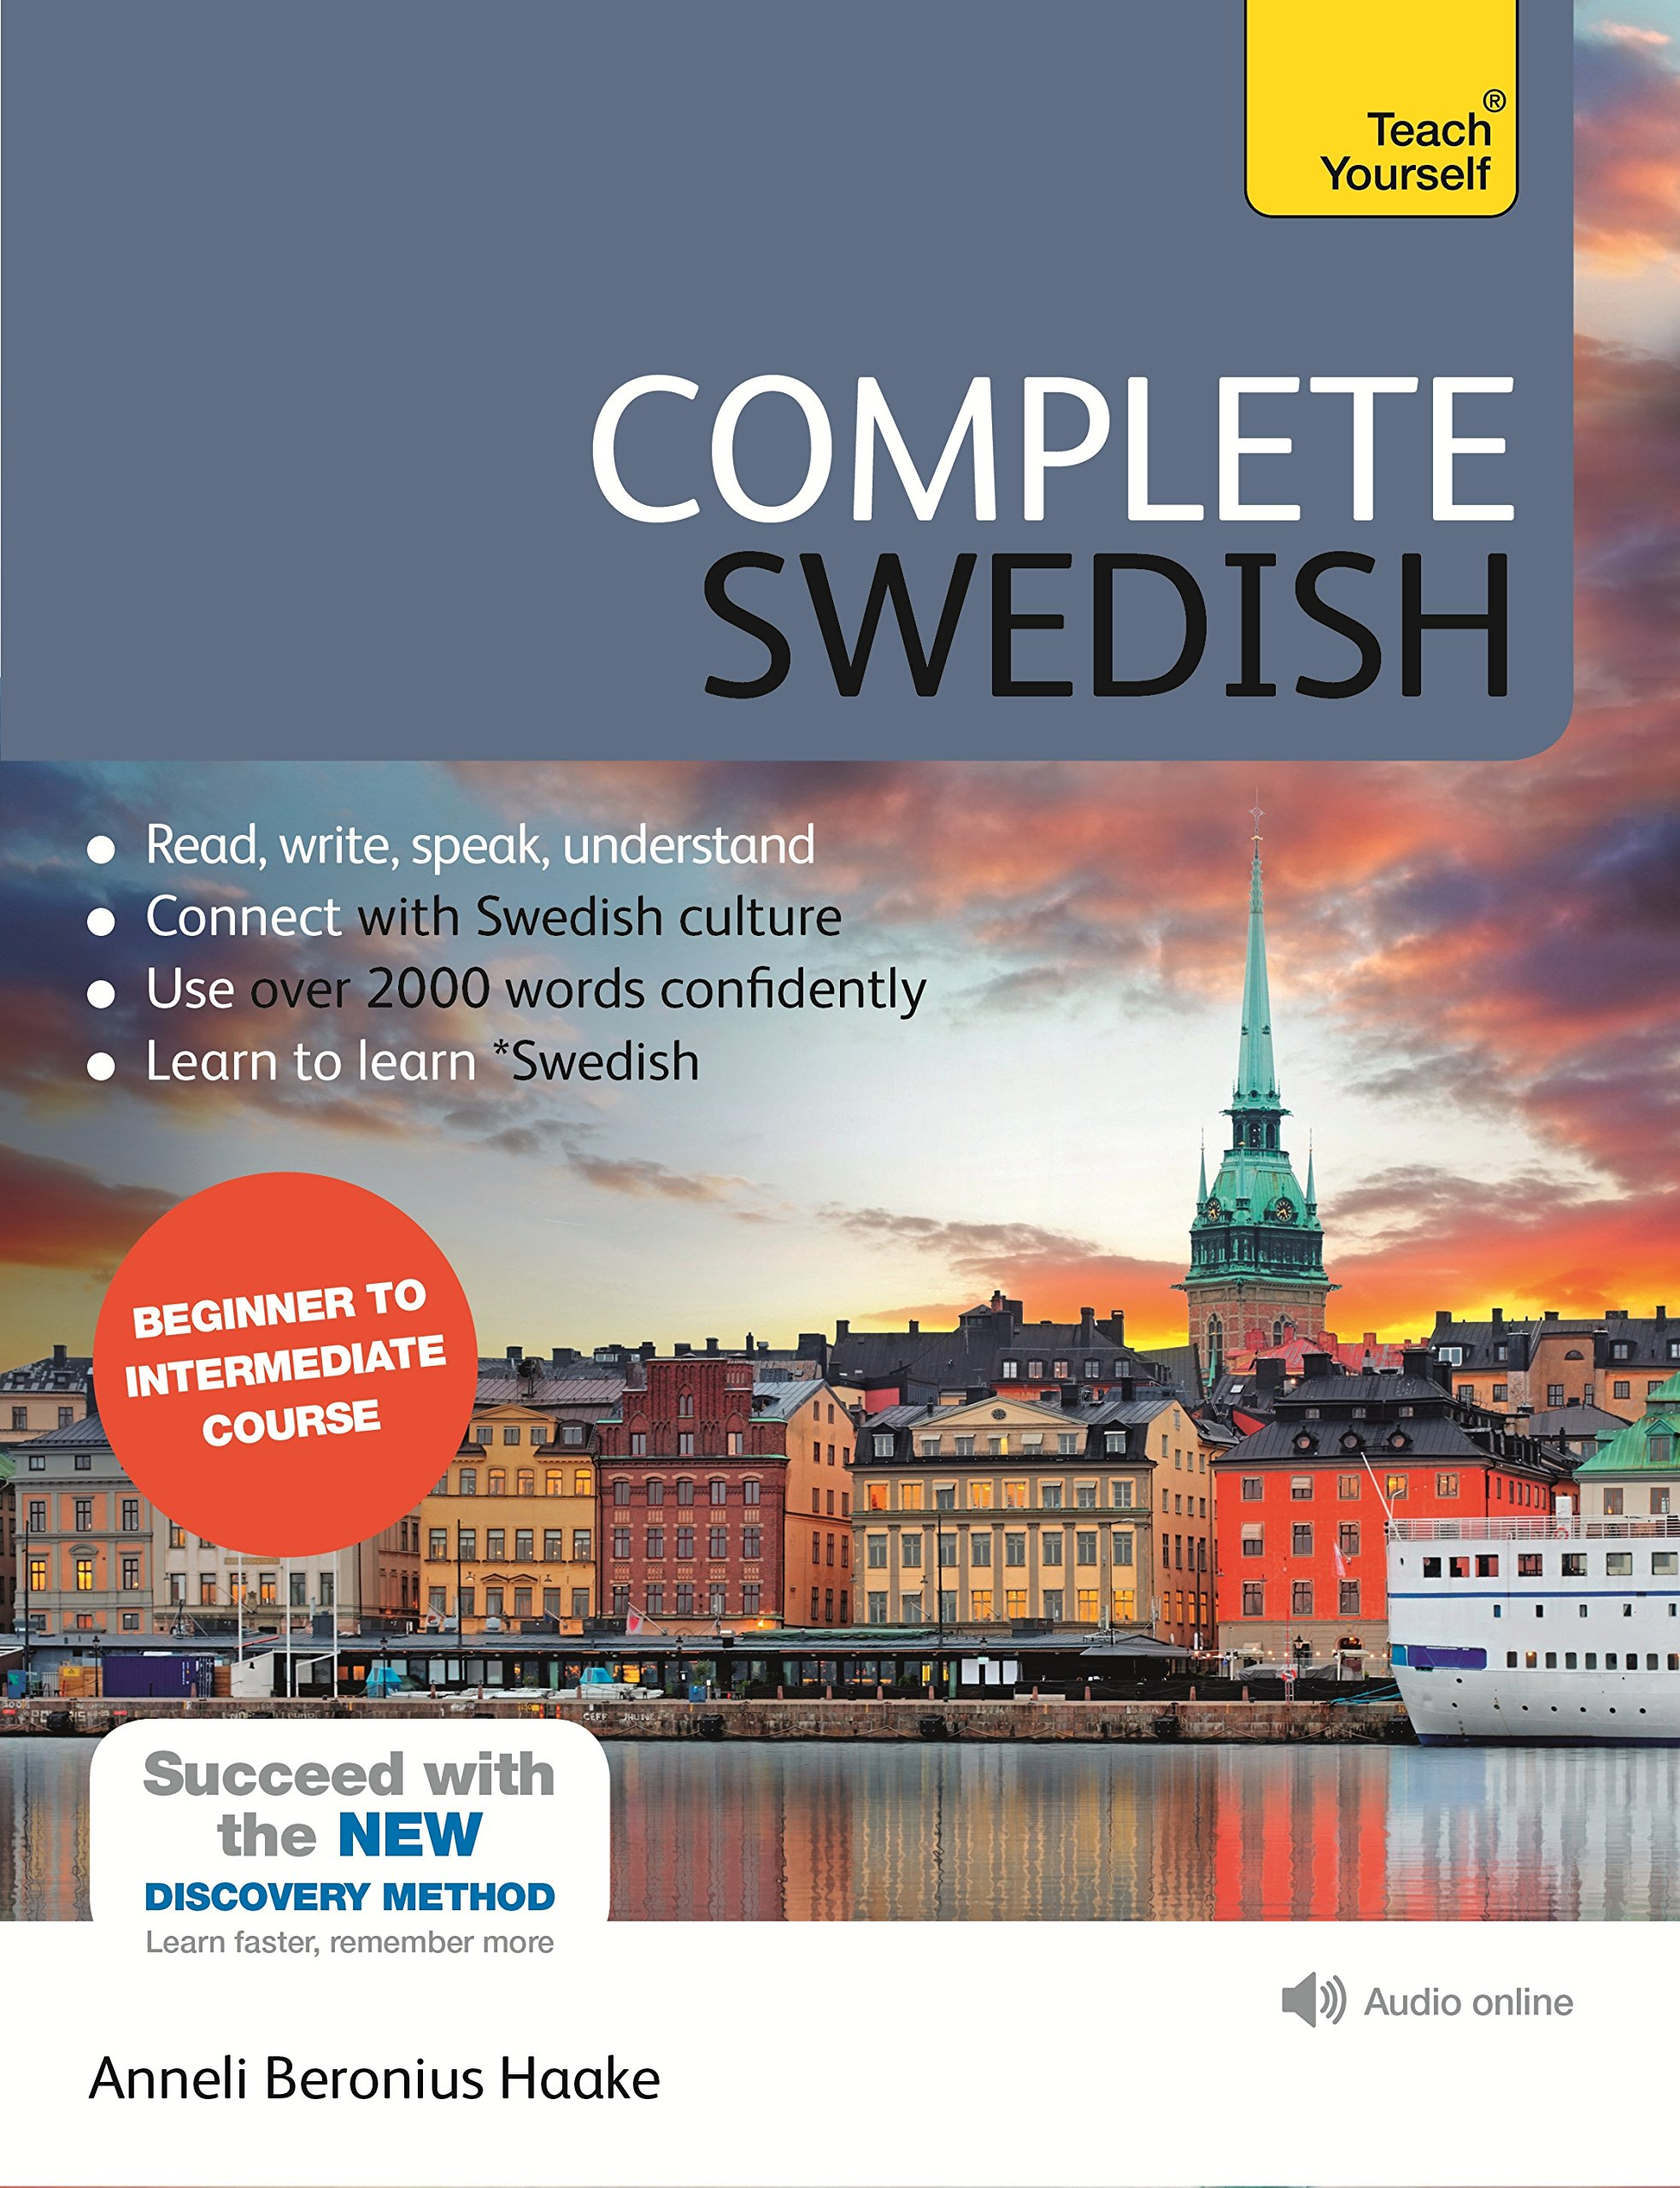 Teach Yourself Complete Swedish now out